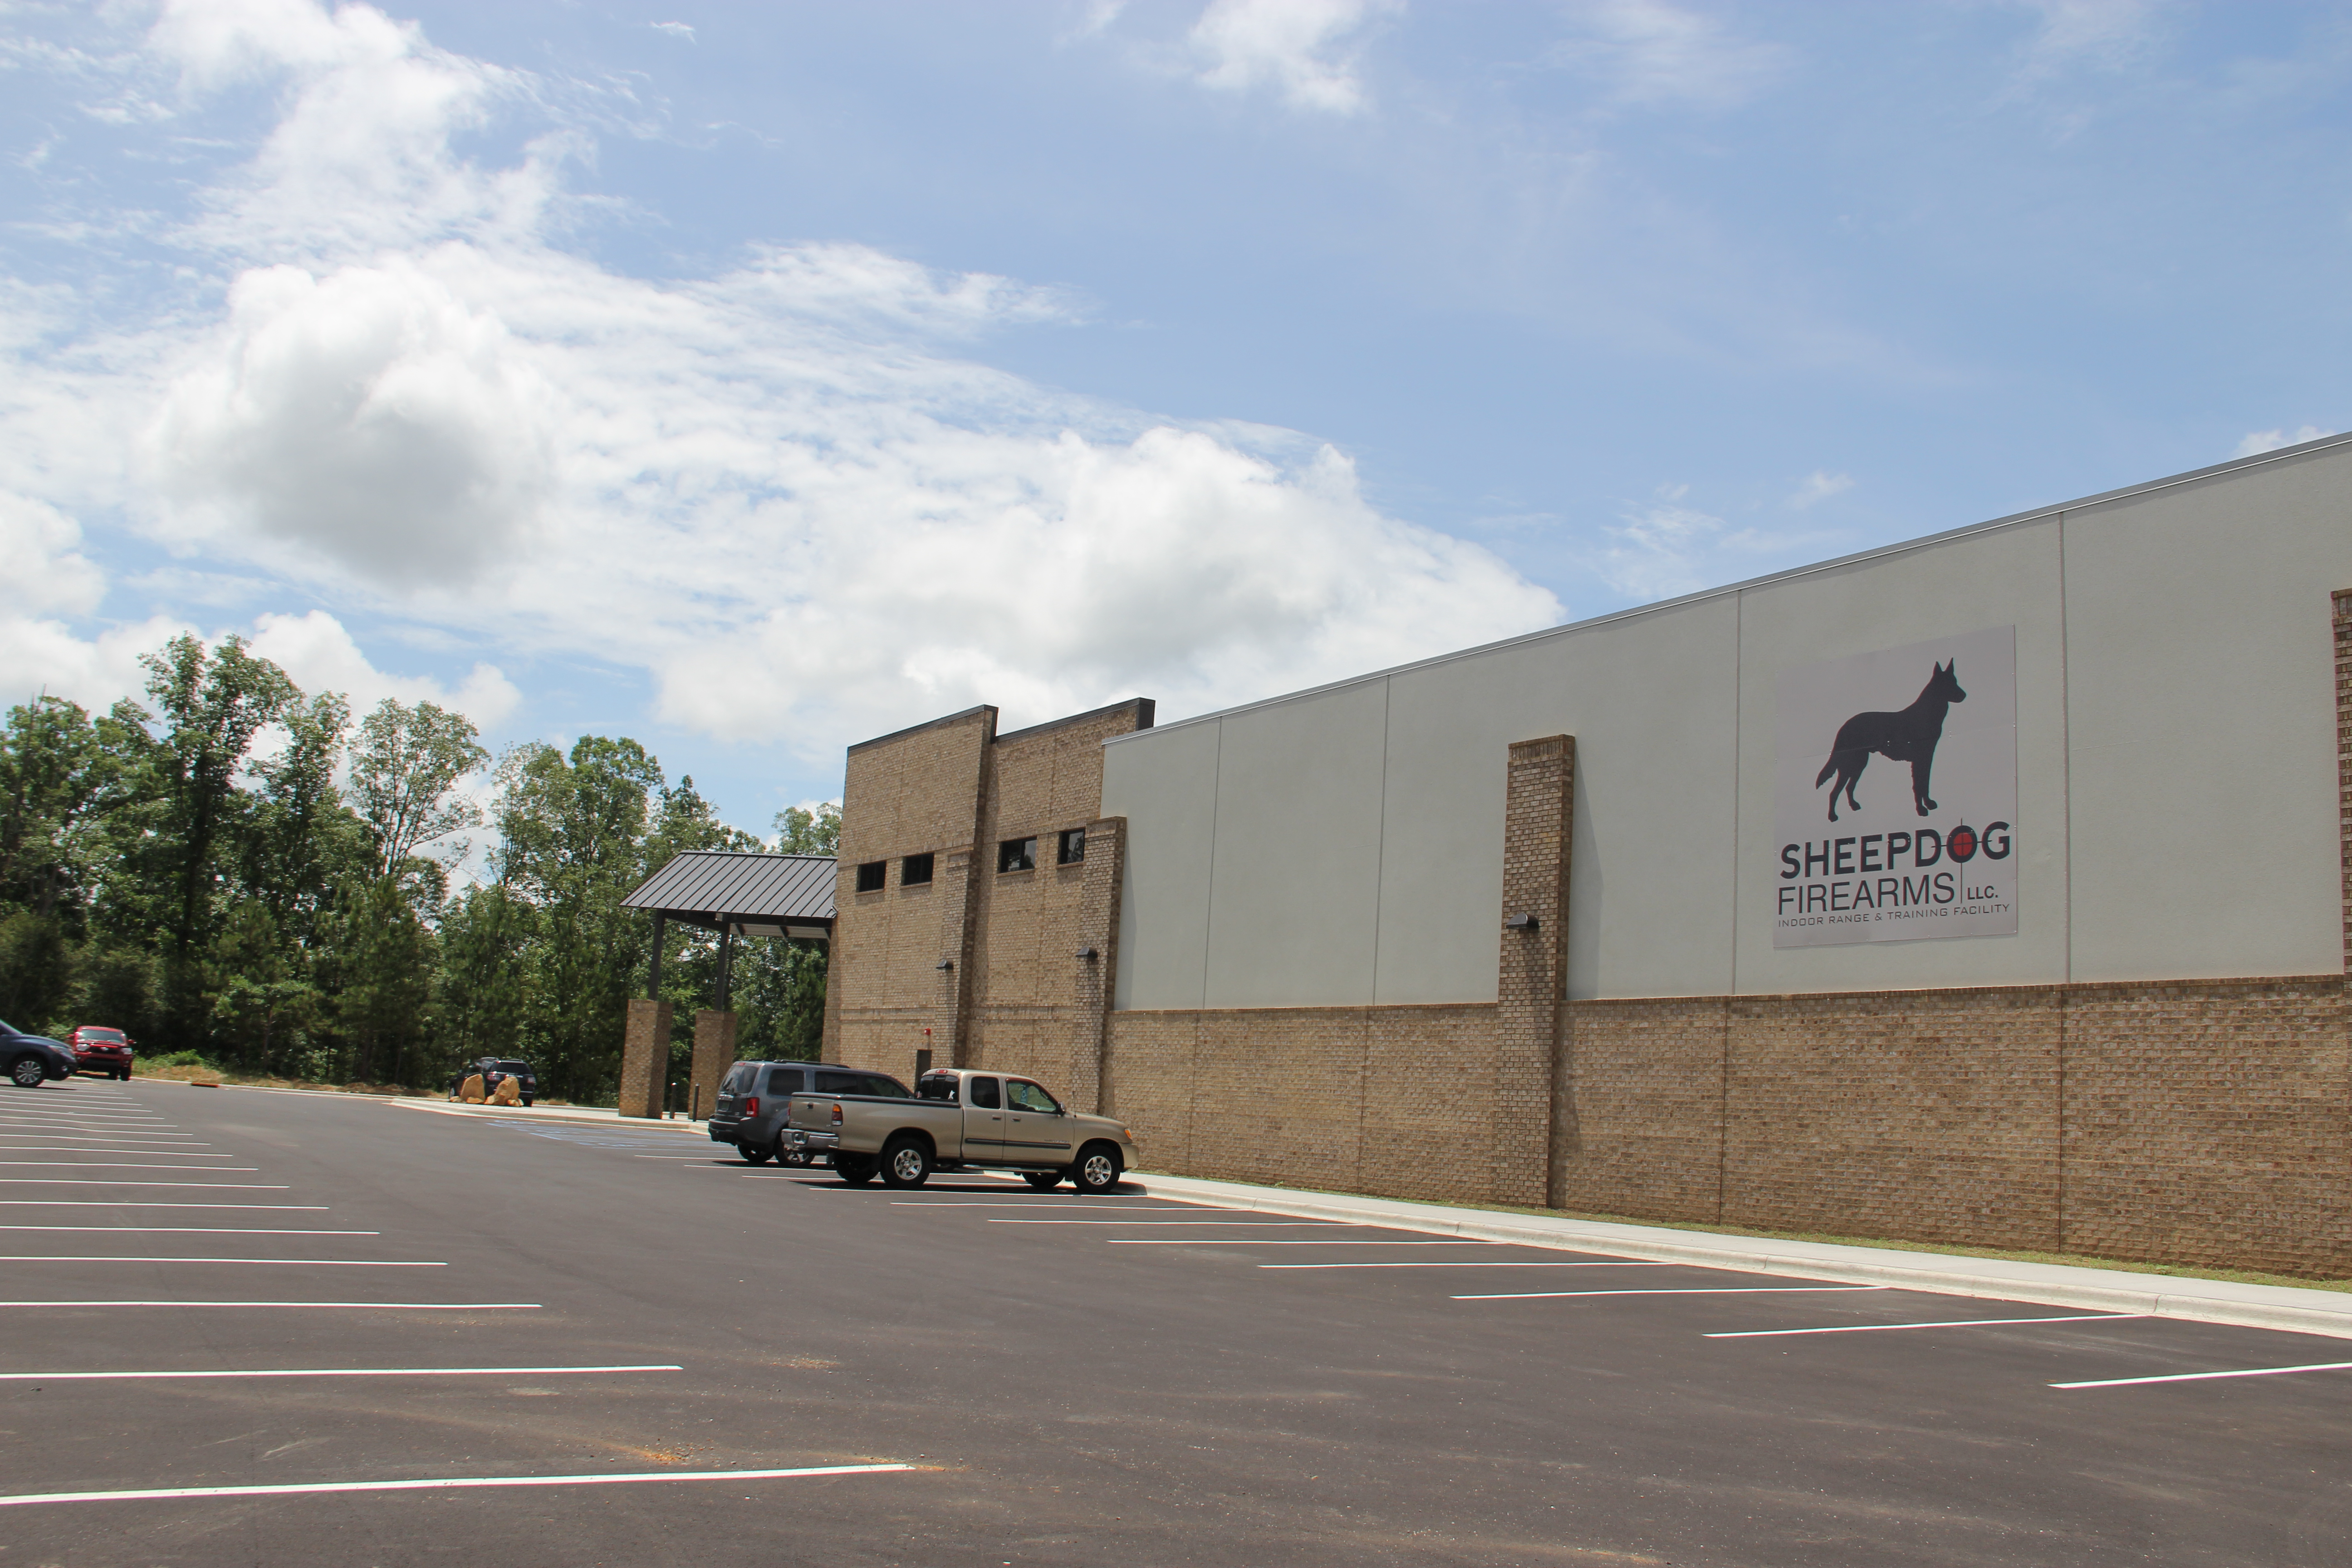 Sheepdog Firearms in Trussville going out of business